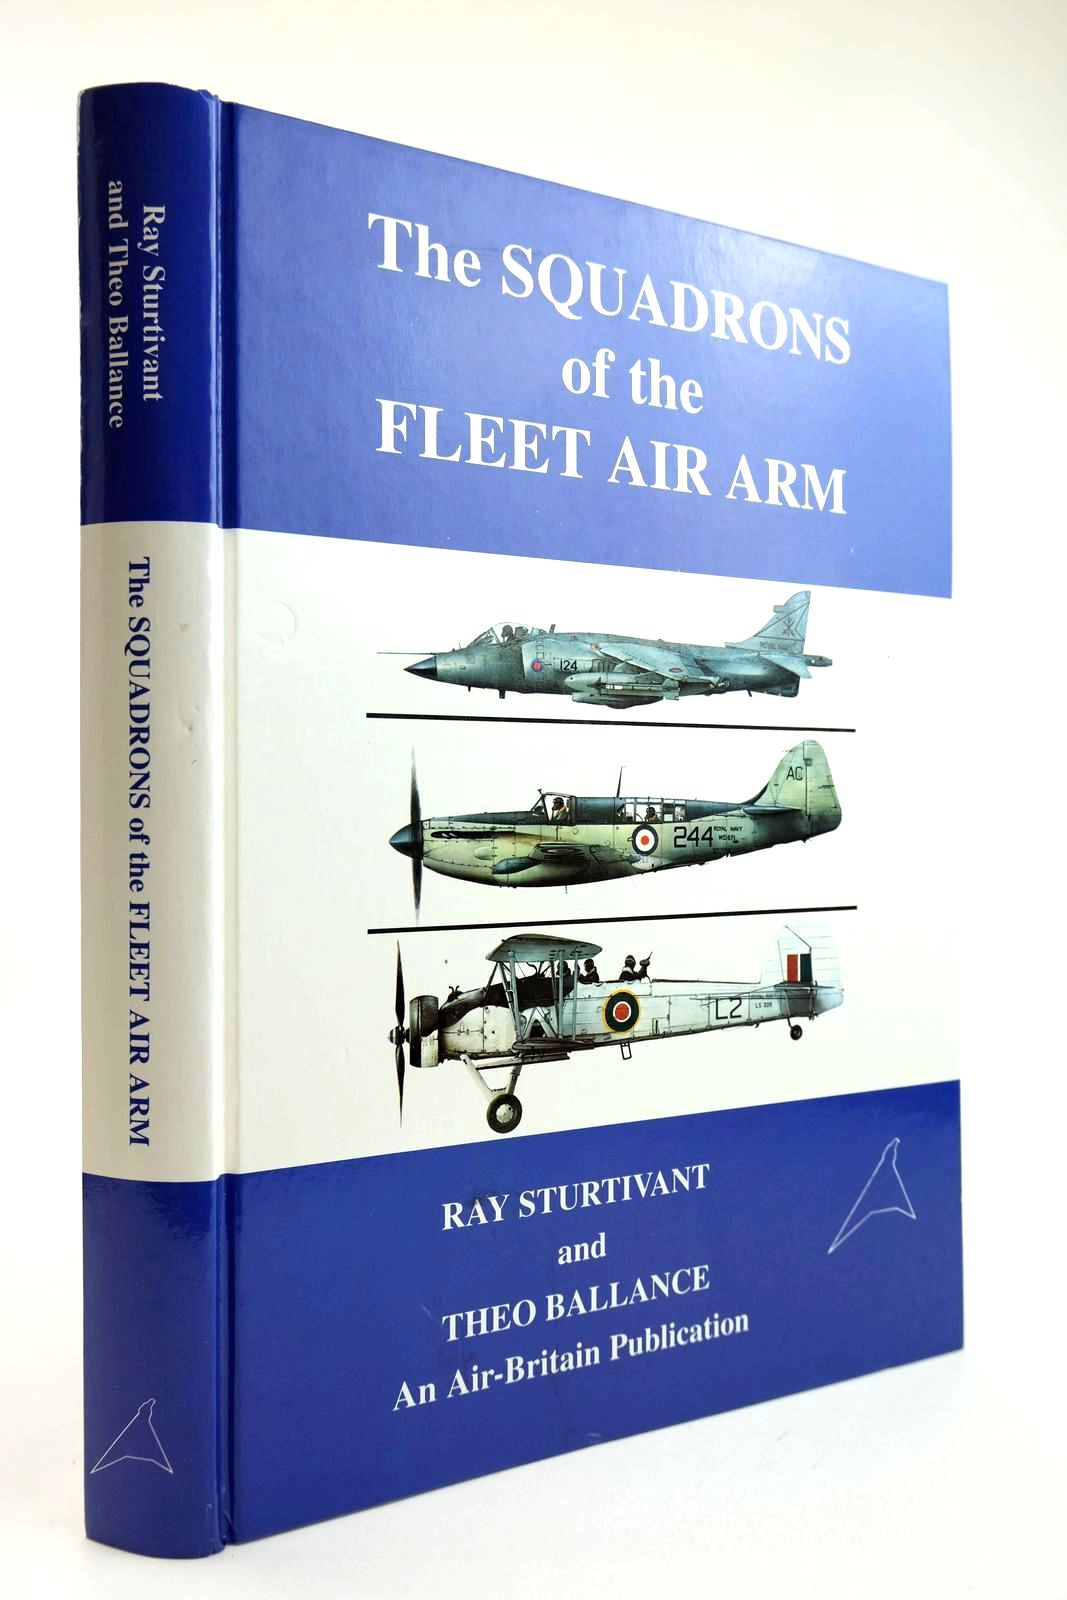 Photo of THE SQUADRONS OF THE FLEET AIR ARM written by Sturtivant, Ray Ballance, Theo published by Air-Britain (Historians) Ltd. (STOCK CODE: 2132189)  for sale by Stella & Rose's Books